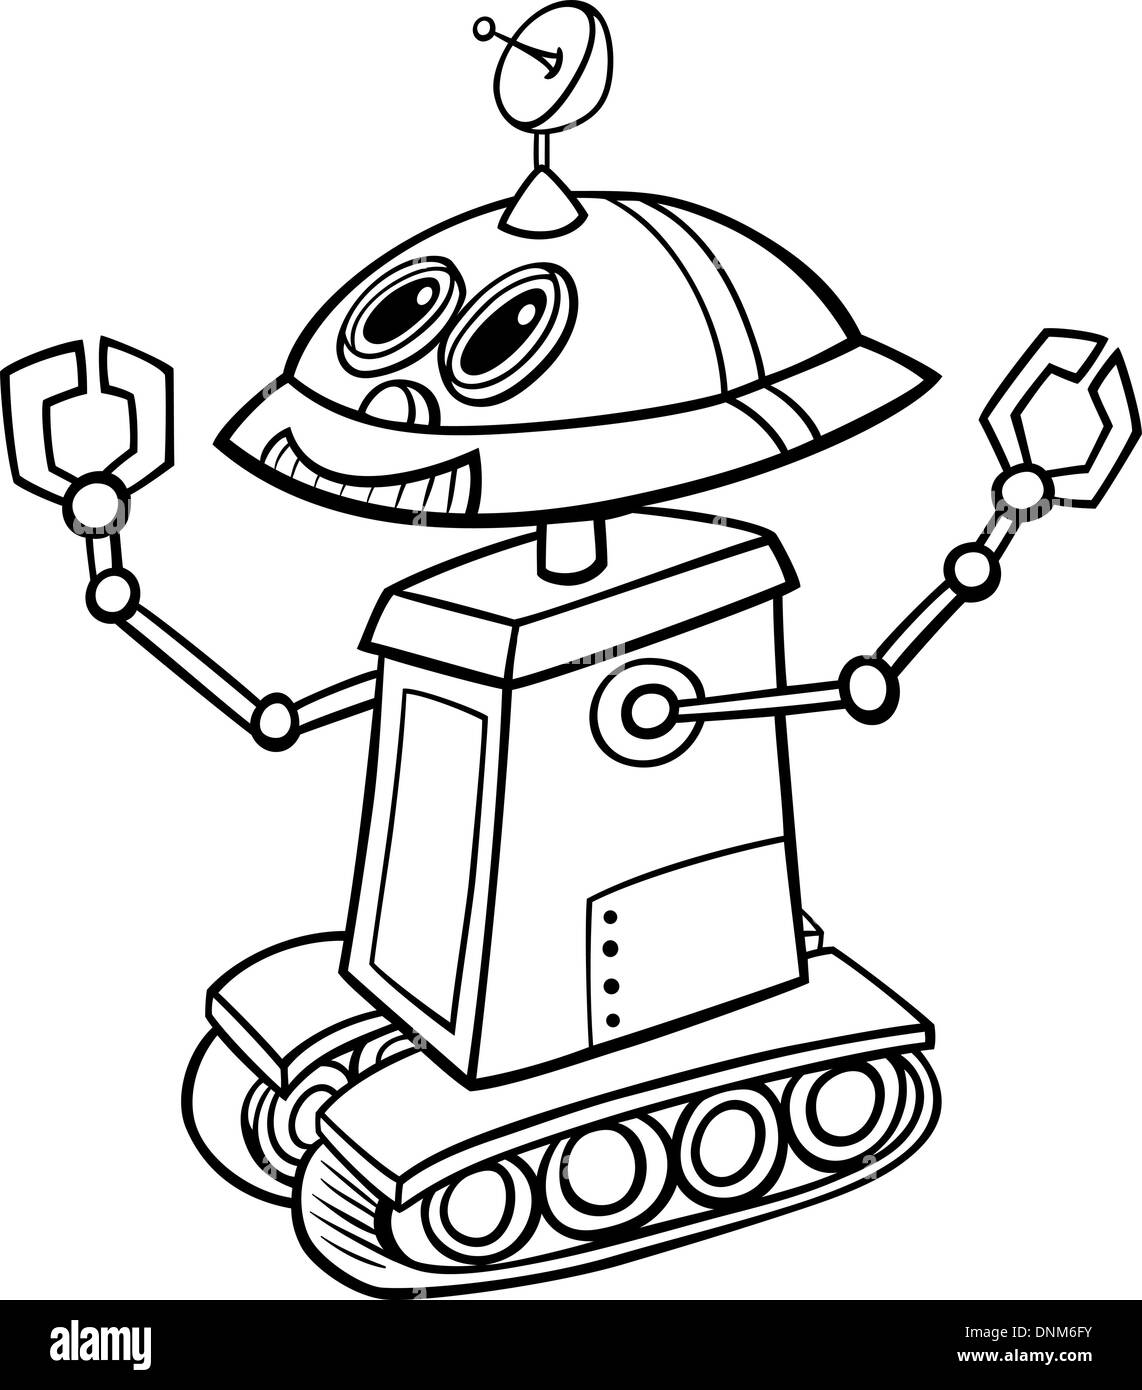 Black And White Cartoon Illustration Of Funny Robot Or Droid For Children To Coloring Book